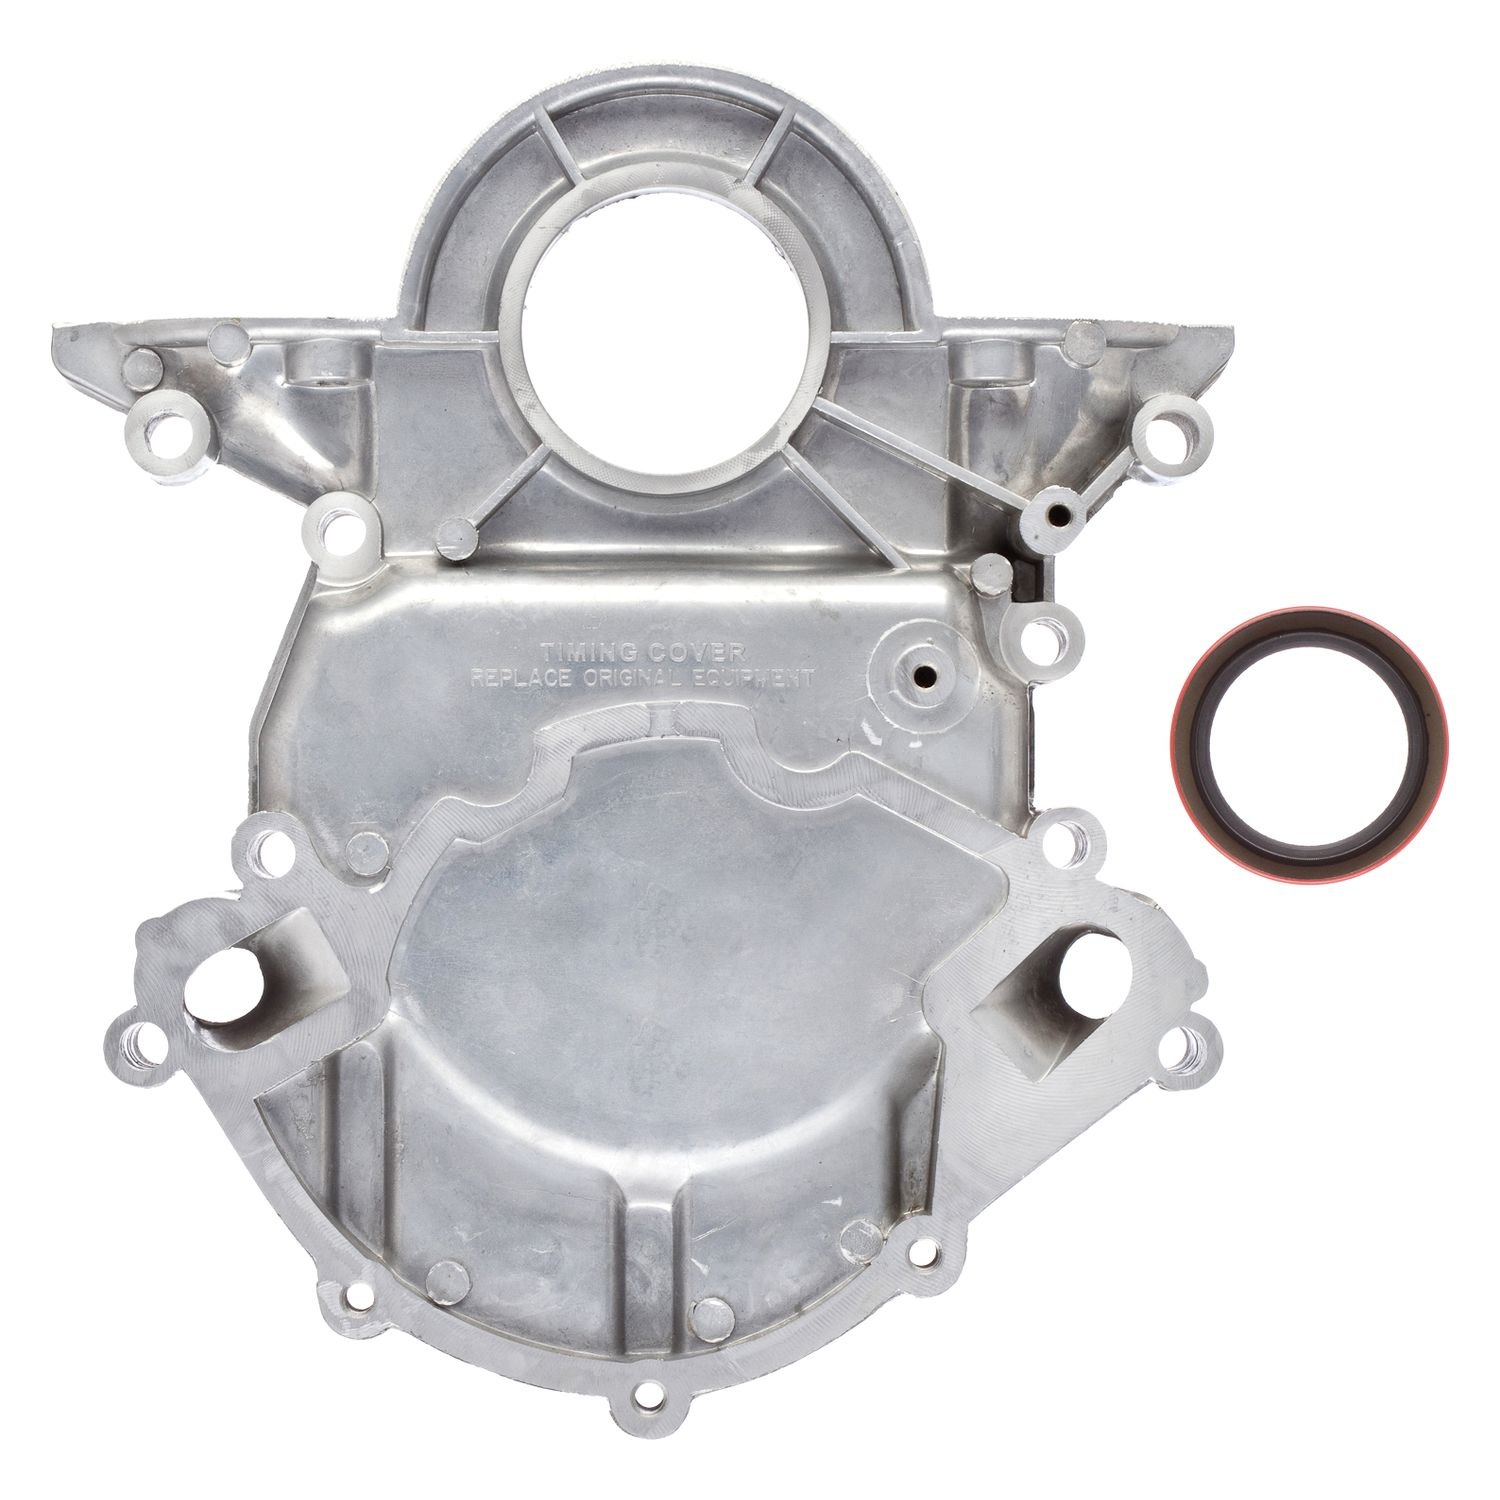 1994 Ford F 150 Cooling System